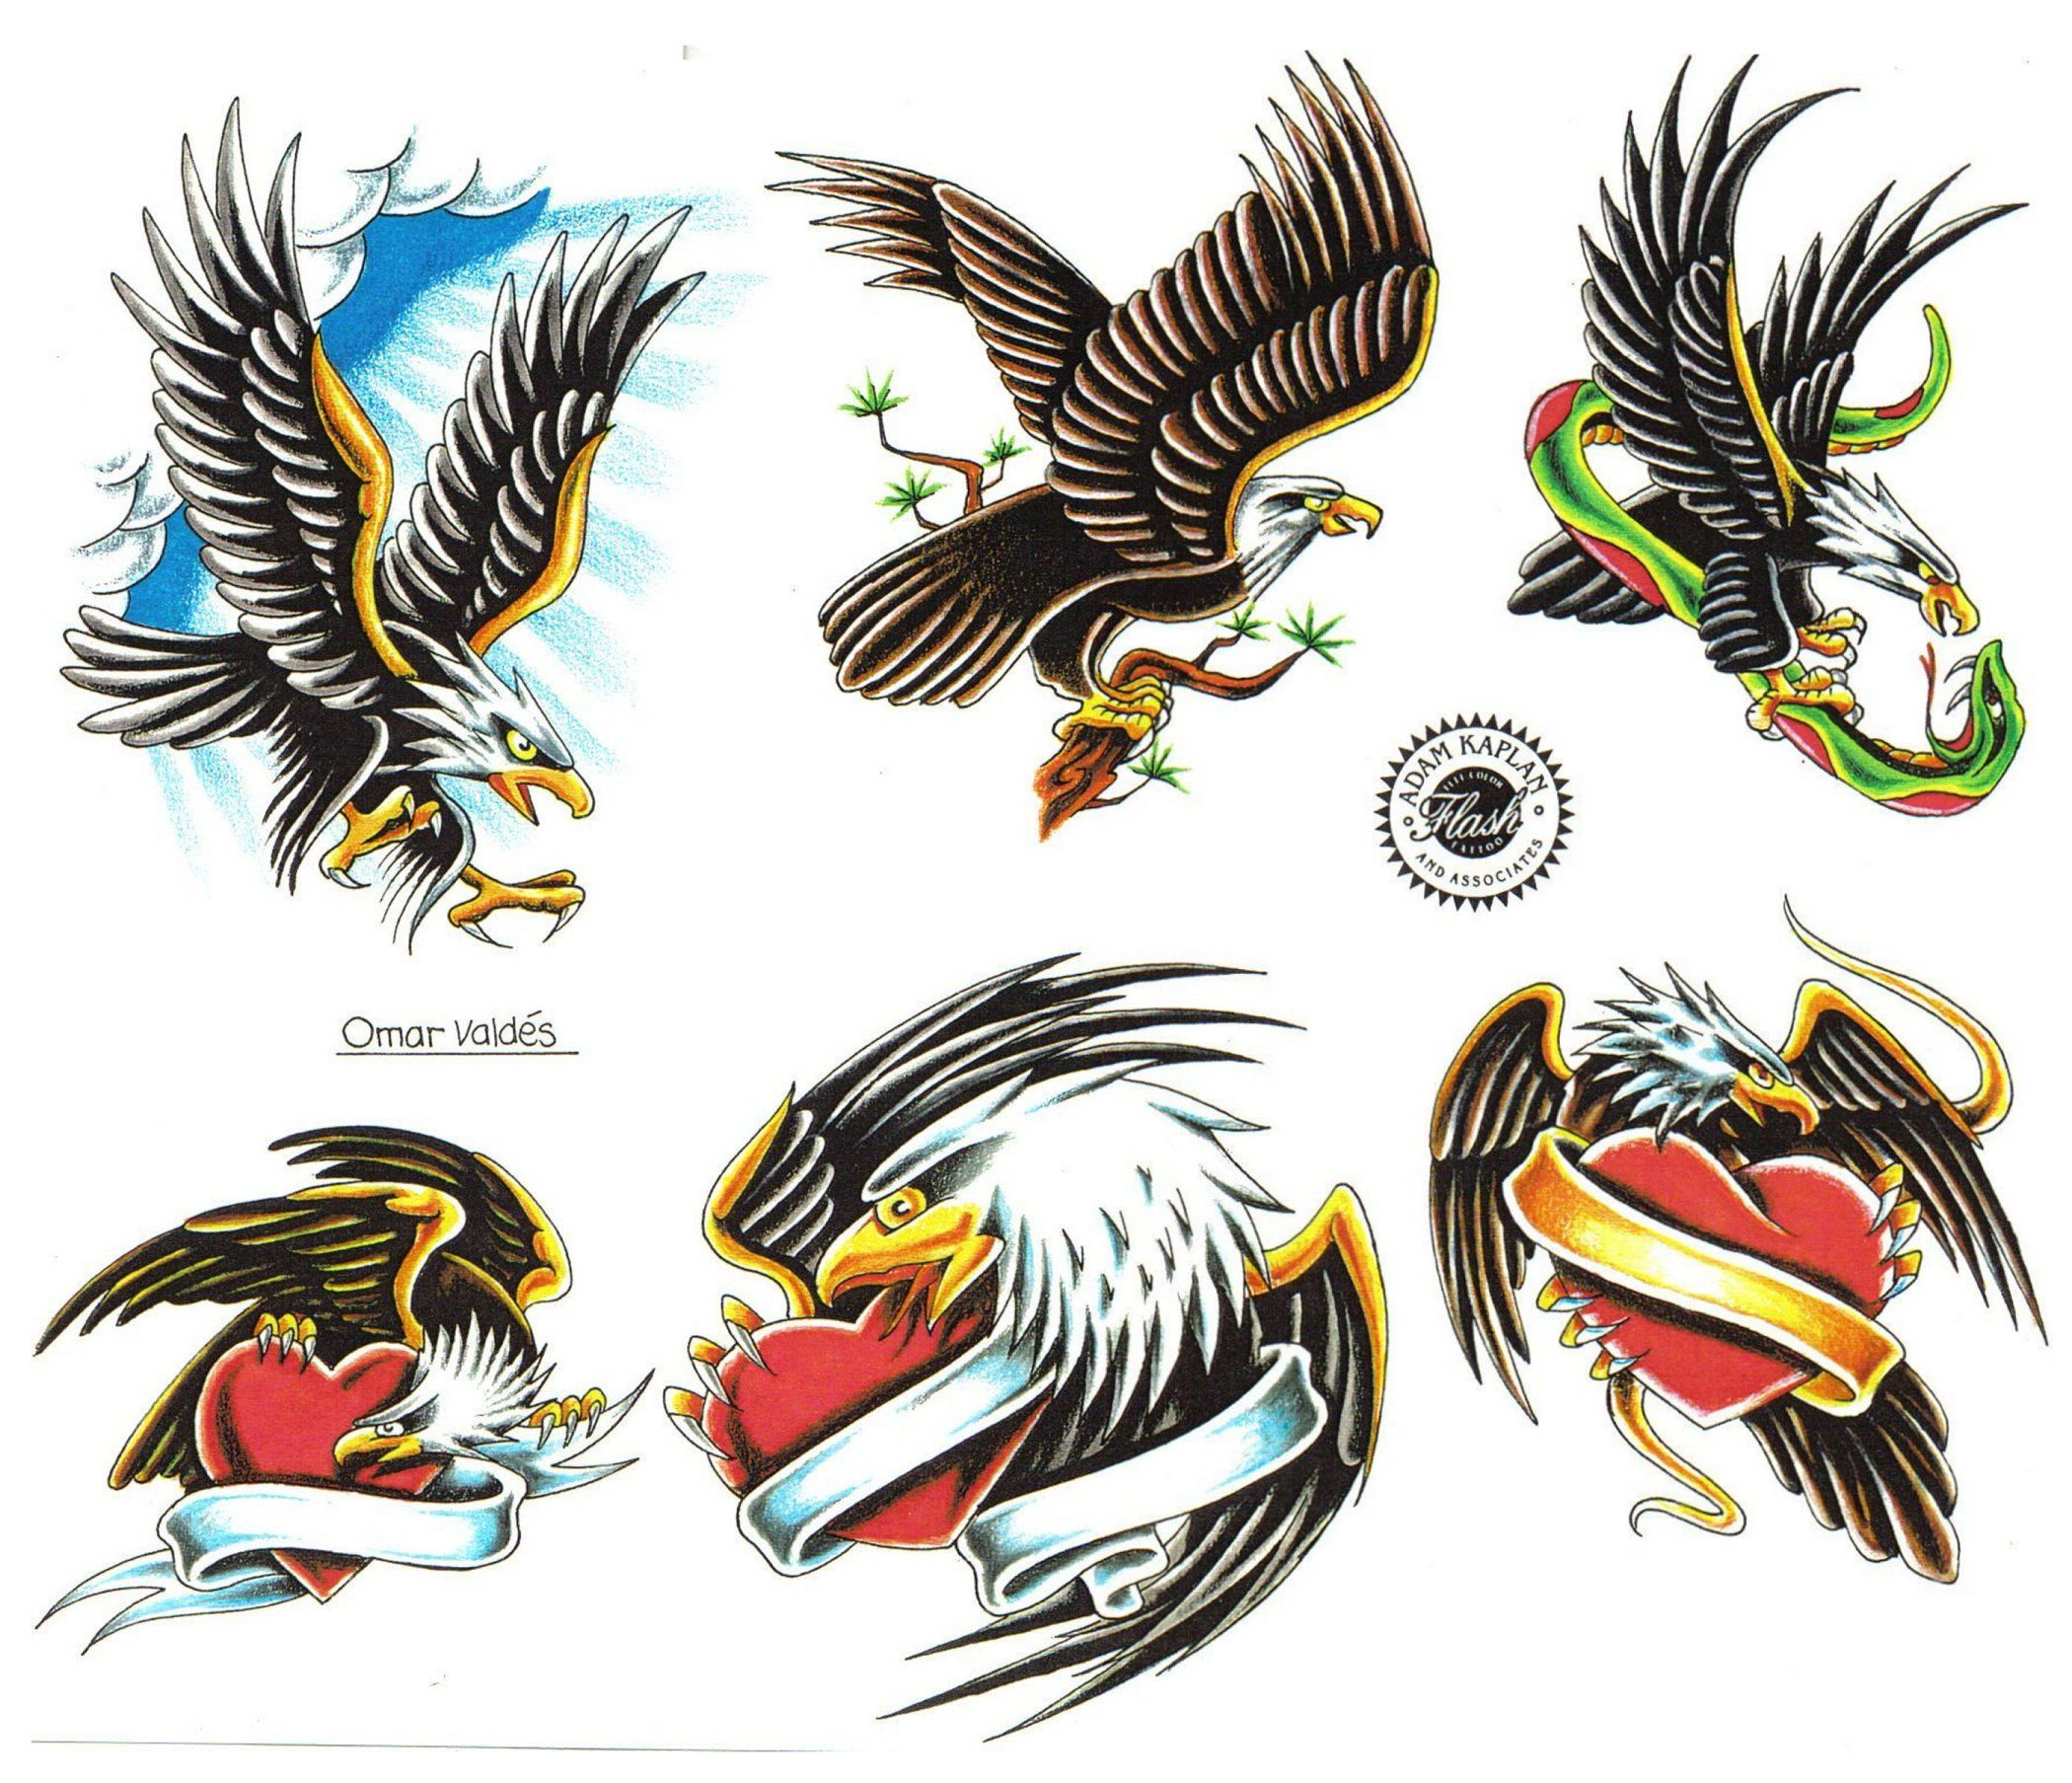 American eagle tattoos high quality photos and flash - Tattoo Drawing Eagle Flying Tattoos Art